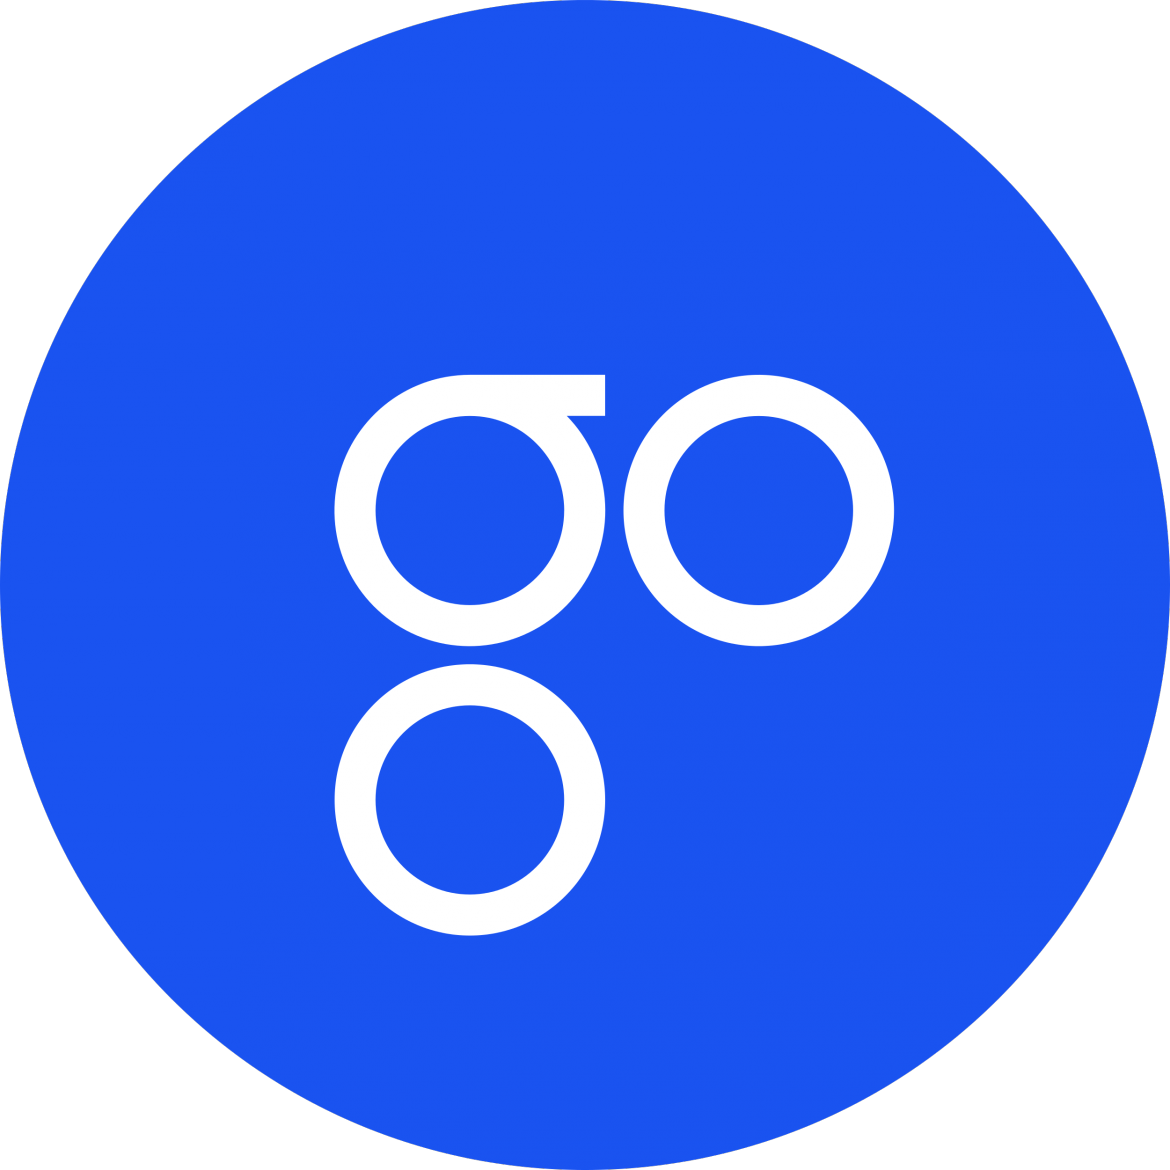 omisego-1170x1170.png?x88891